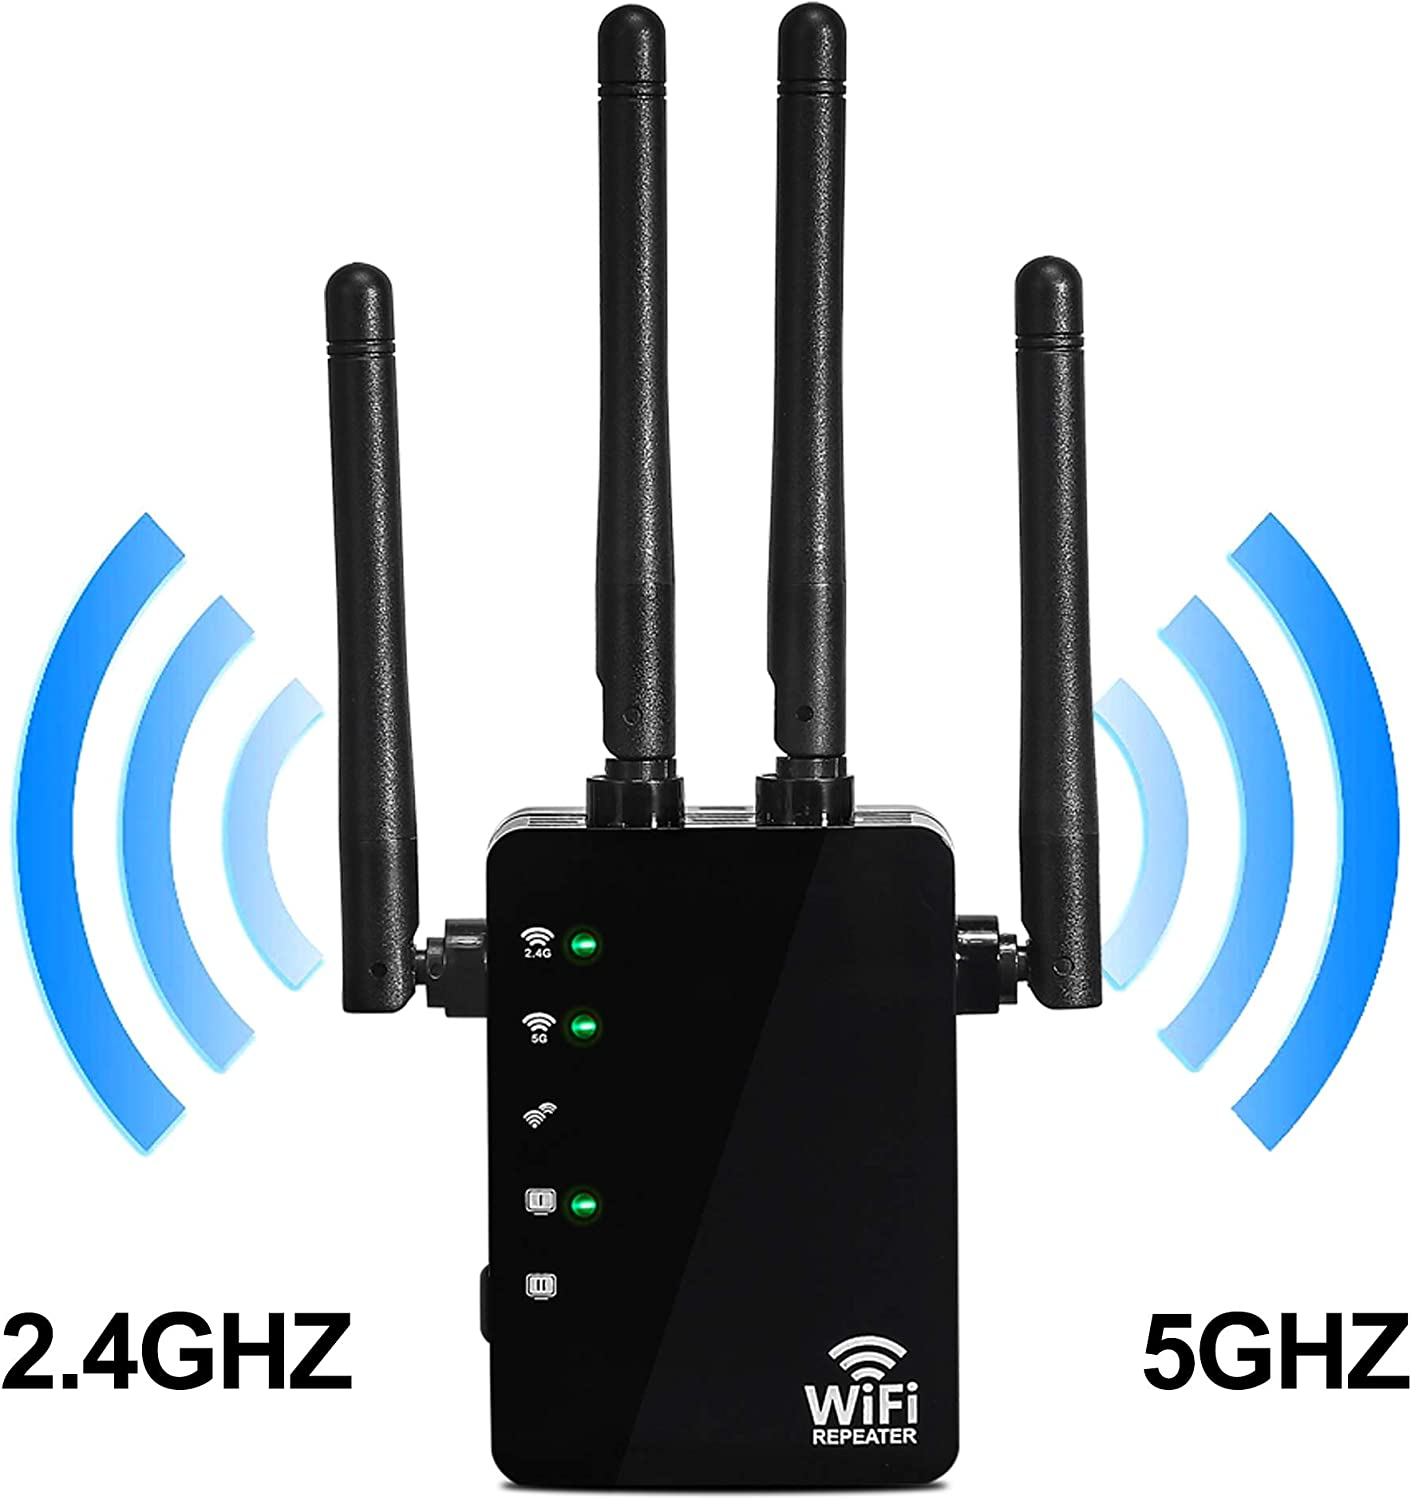 WiFi Rang Extender 5G&2.4G Wireless Repeater 1200Mbps Dual Band Single Booster for Home WiFi Repeater, Internet WiFi Booster, Access Point, with Ethernet Ports 4 External Antennas